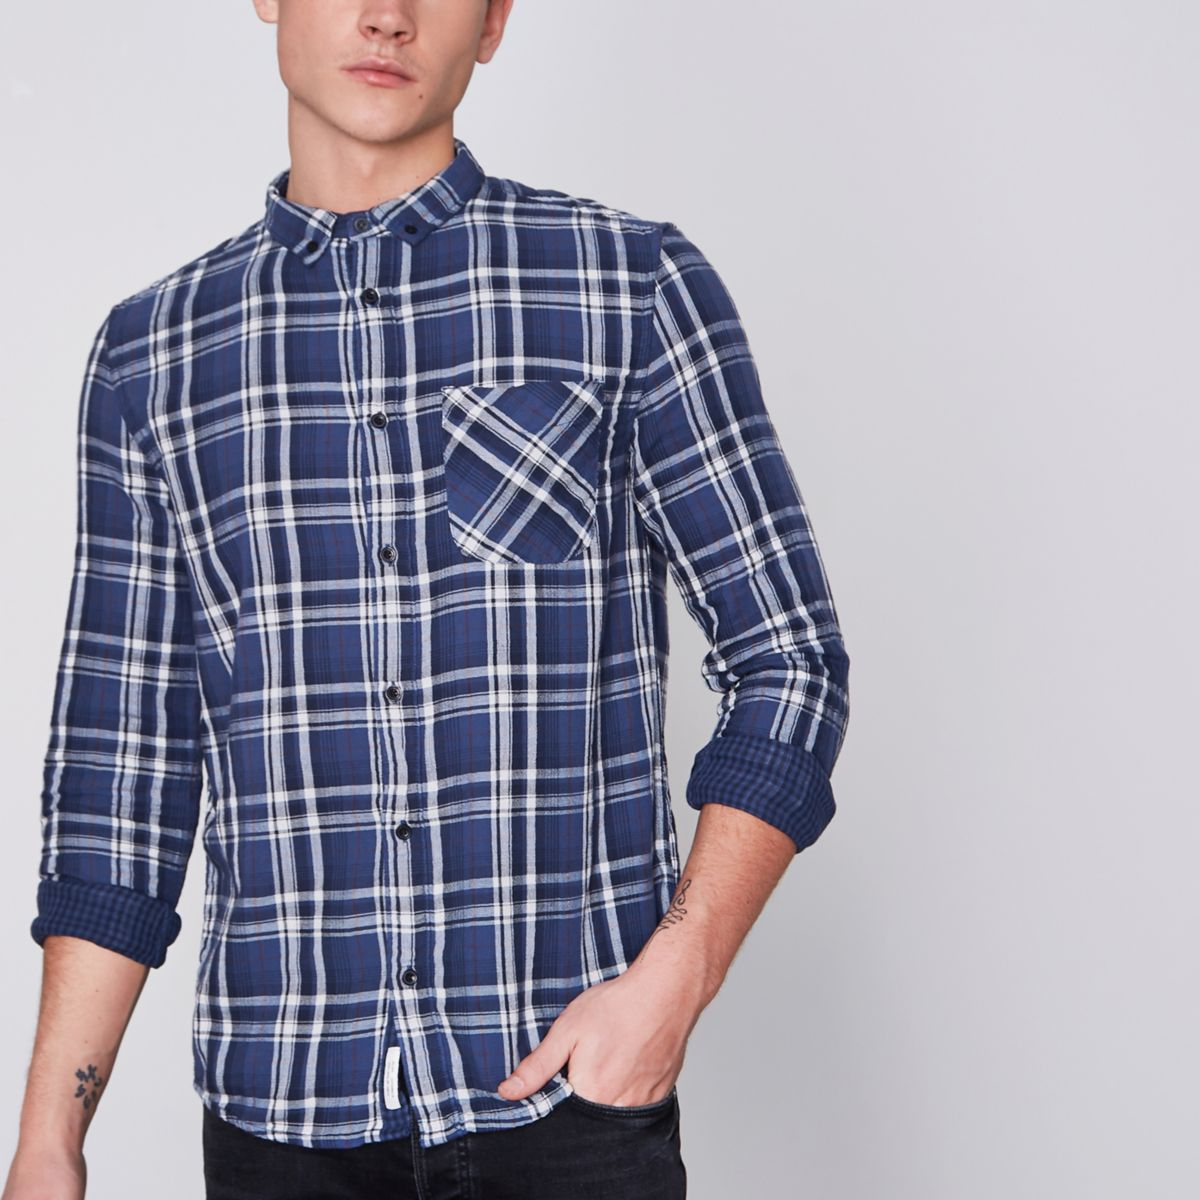 Navy check long sleeve button-down shirt